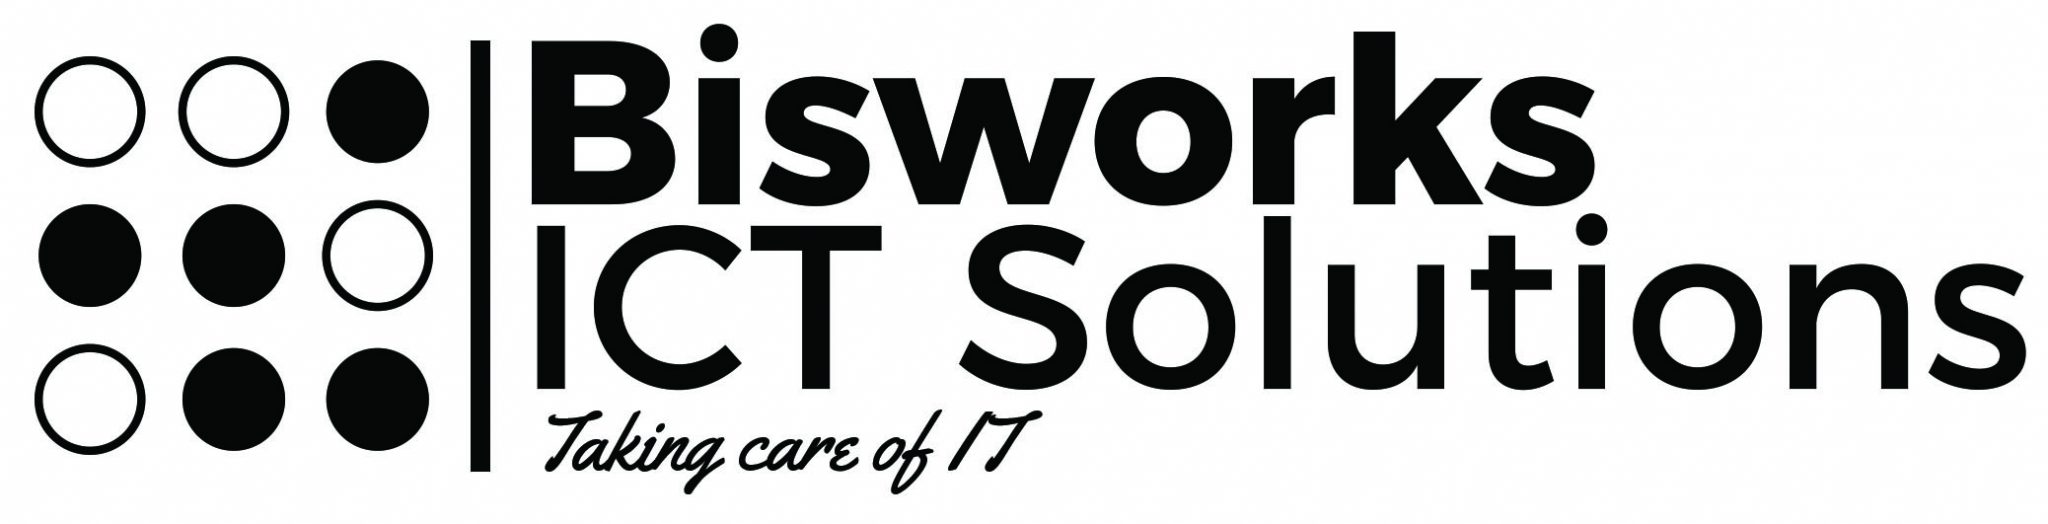 Bisworks ICT Solutions